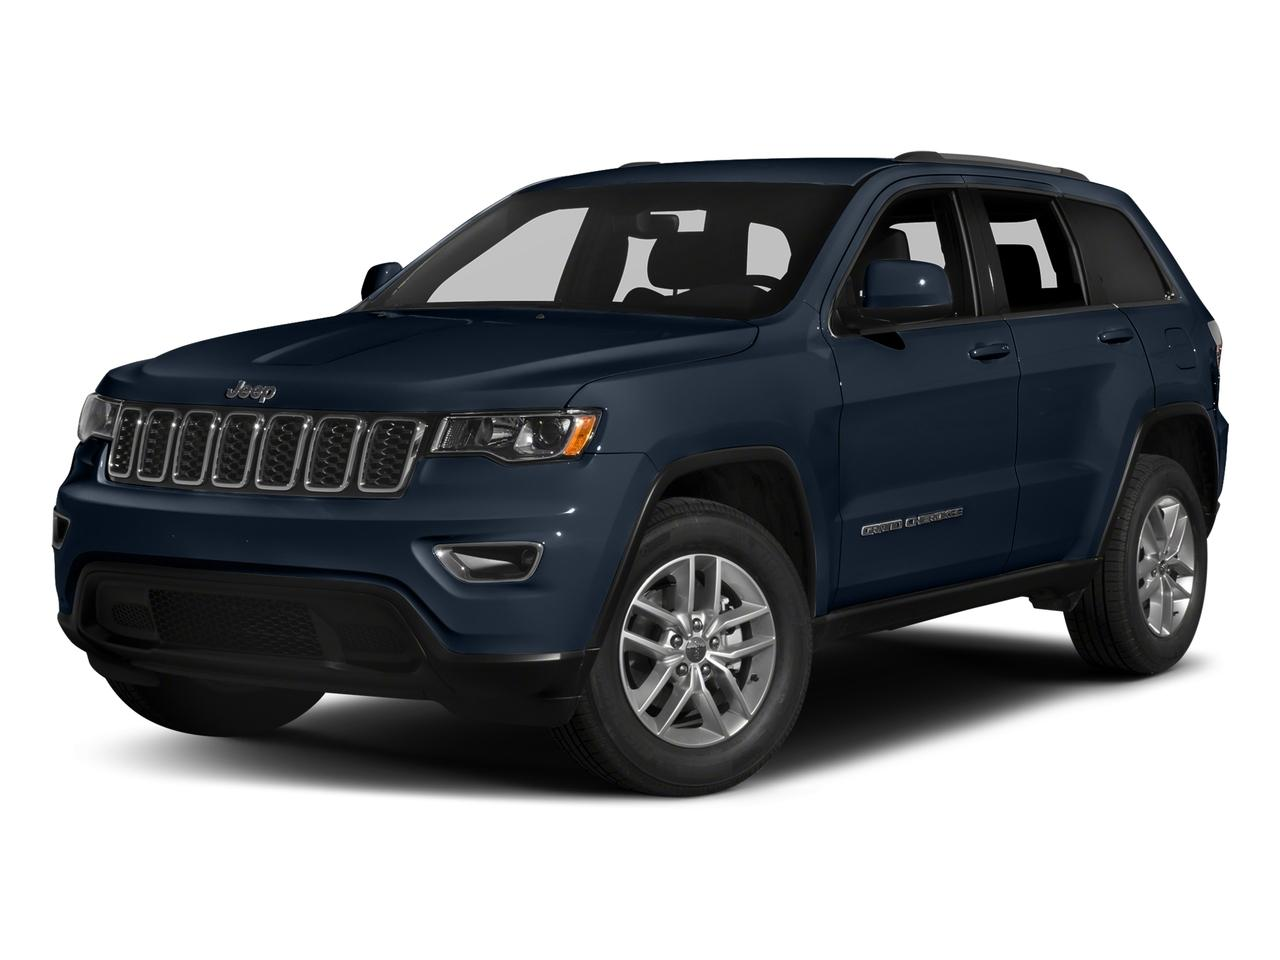 2017 Jeep Grand Cherokee Vehicle Photo in Neenah, WI 54956